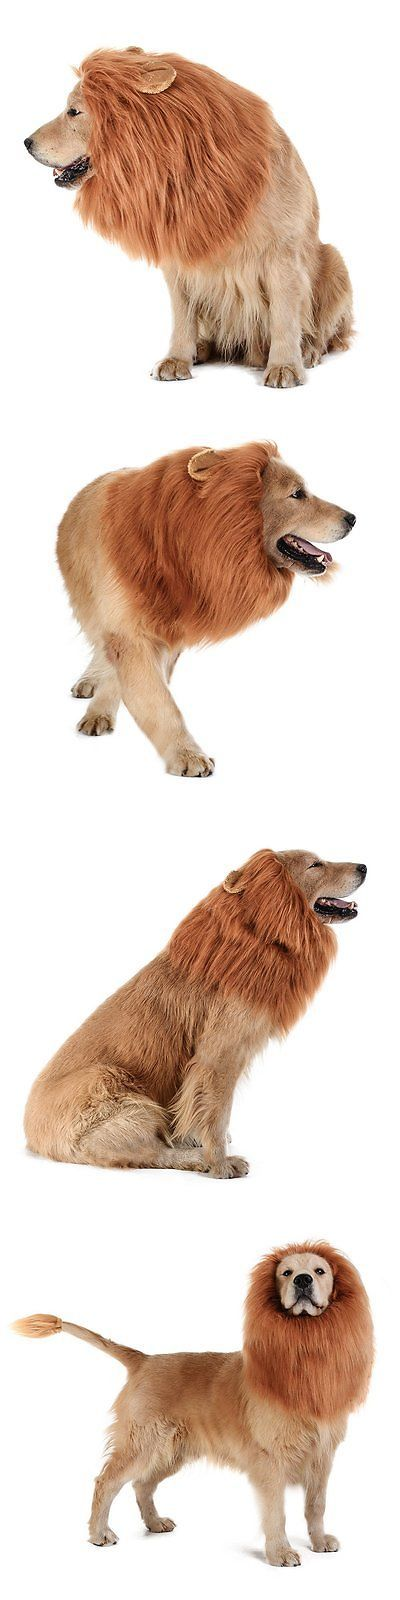 Costumes 52352: Tomsenn Dog Lion Mane - Realistic And Funny Lion Mane For Dogs - Complementary For -> BUY IT NOW ONLY: $37.88 on eBay!